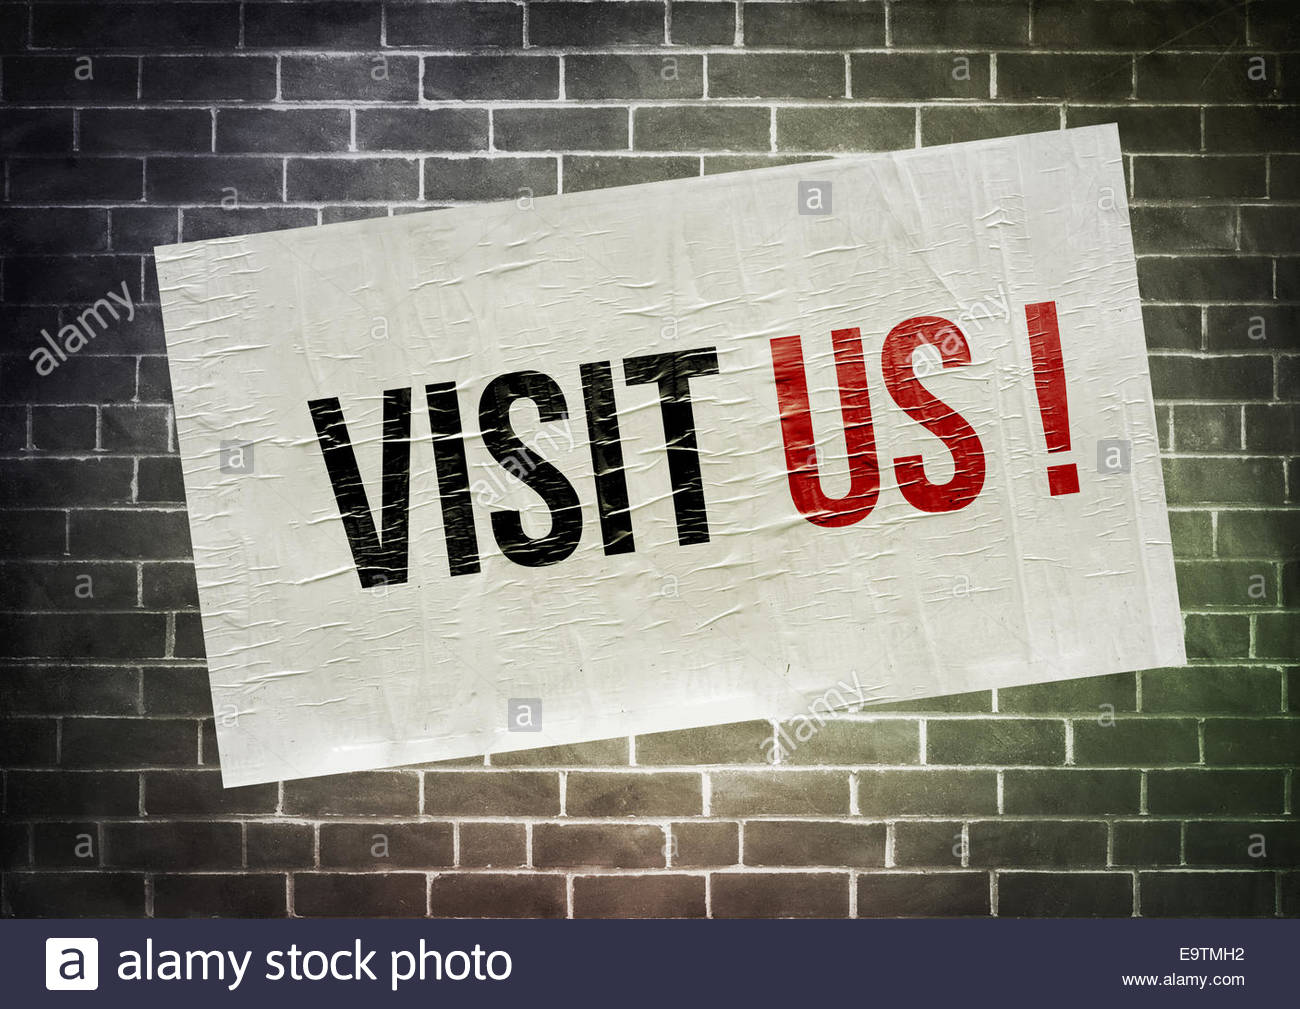 VISIT US - poster concept icon - Stock Image